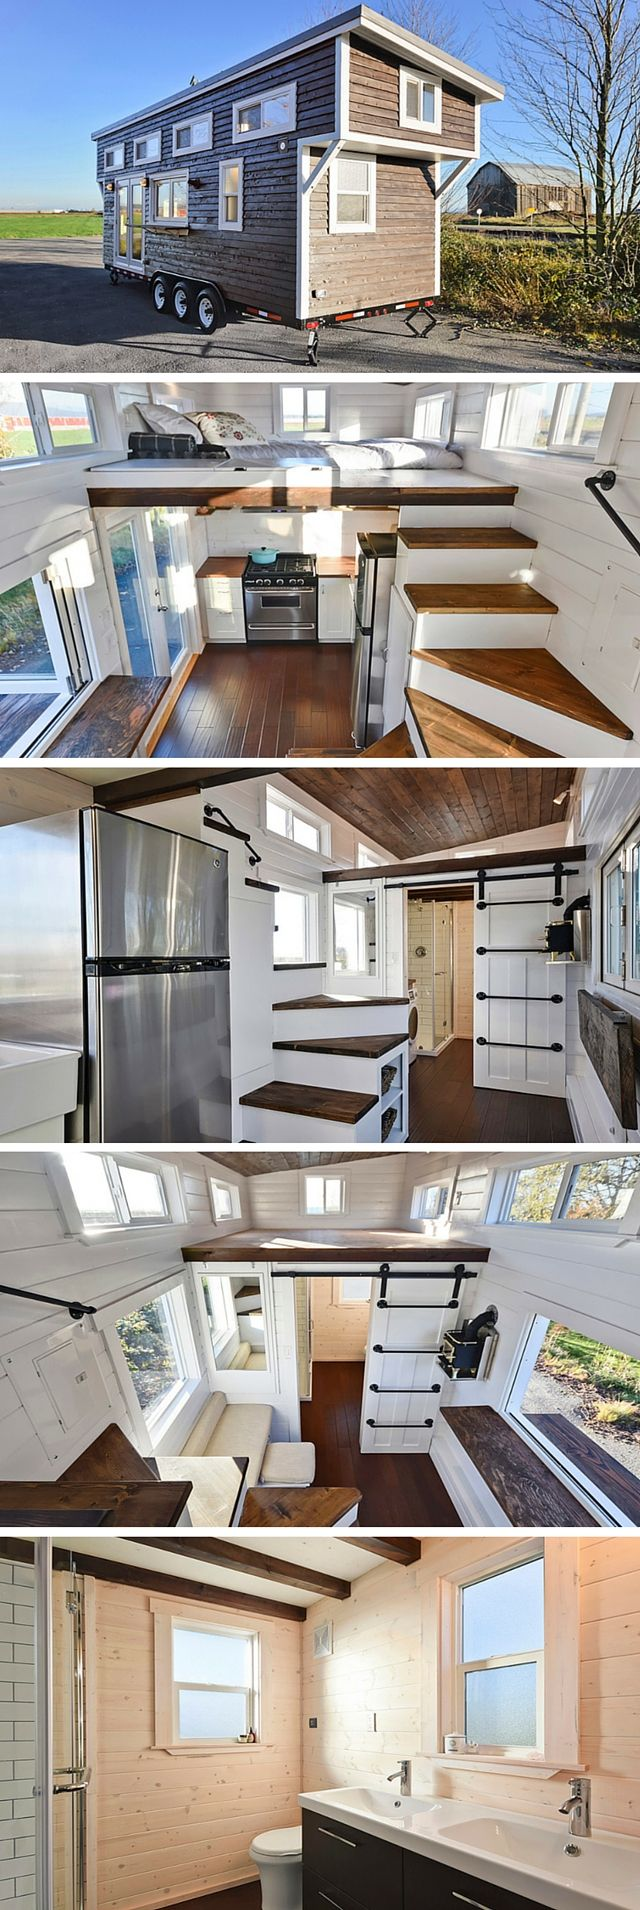 17 Best 1000 images about Traditional Style Tiny Houses on Pinterest